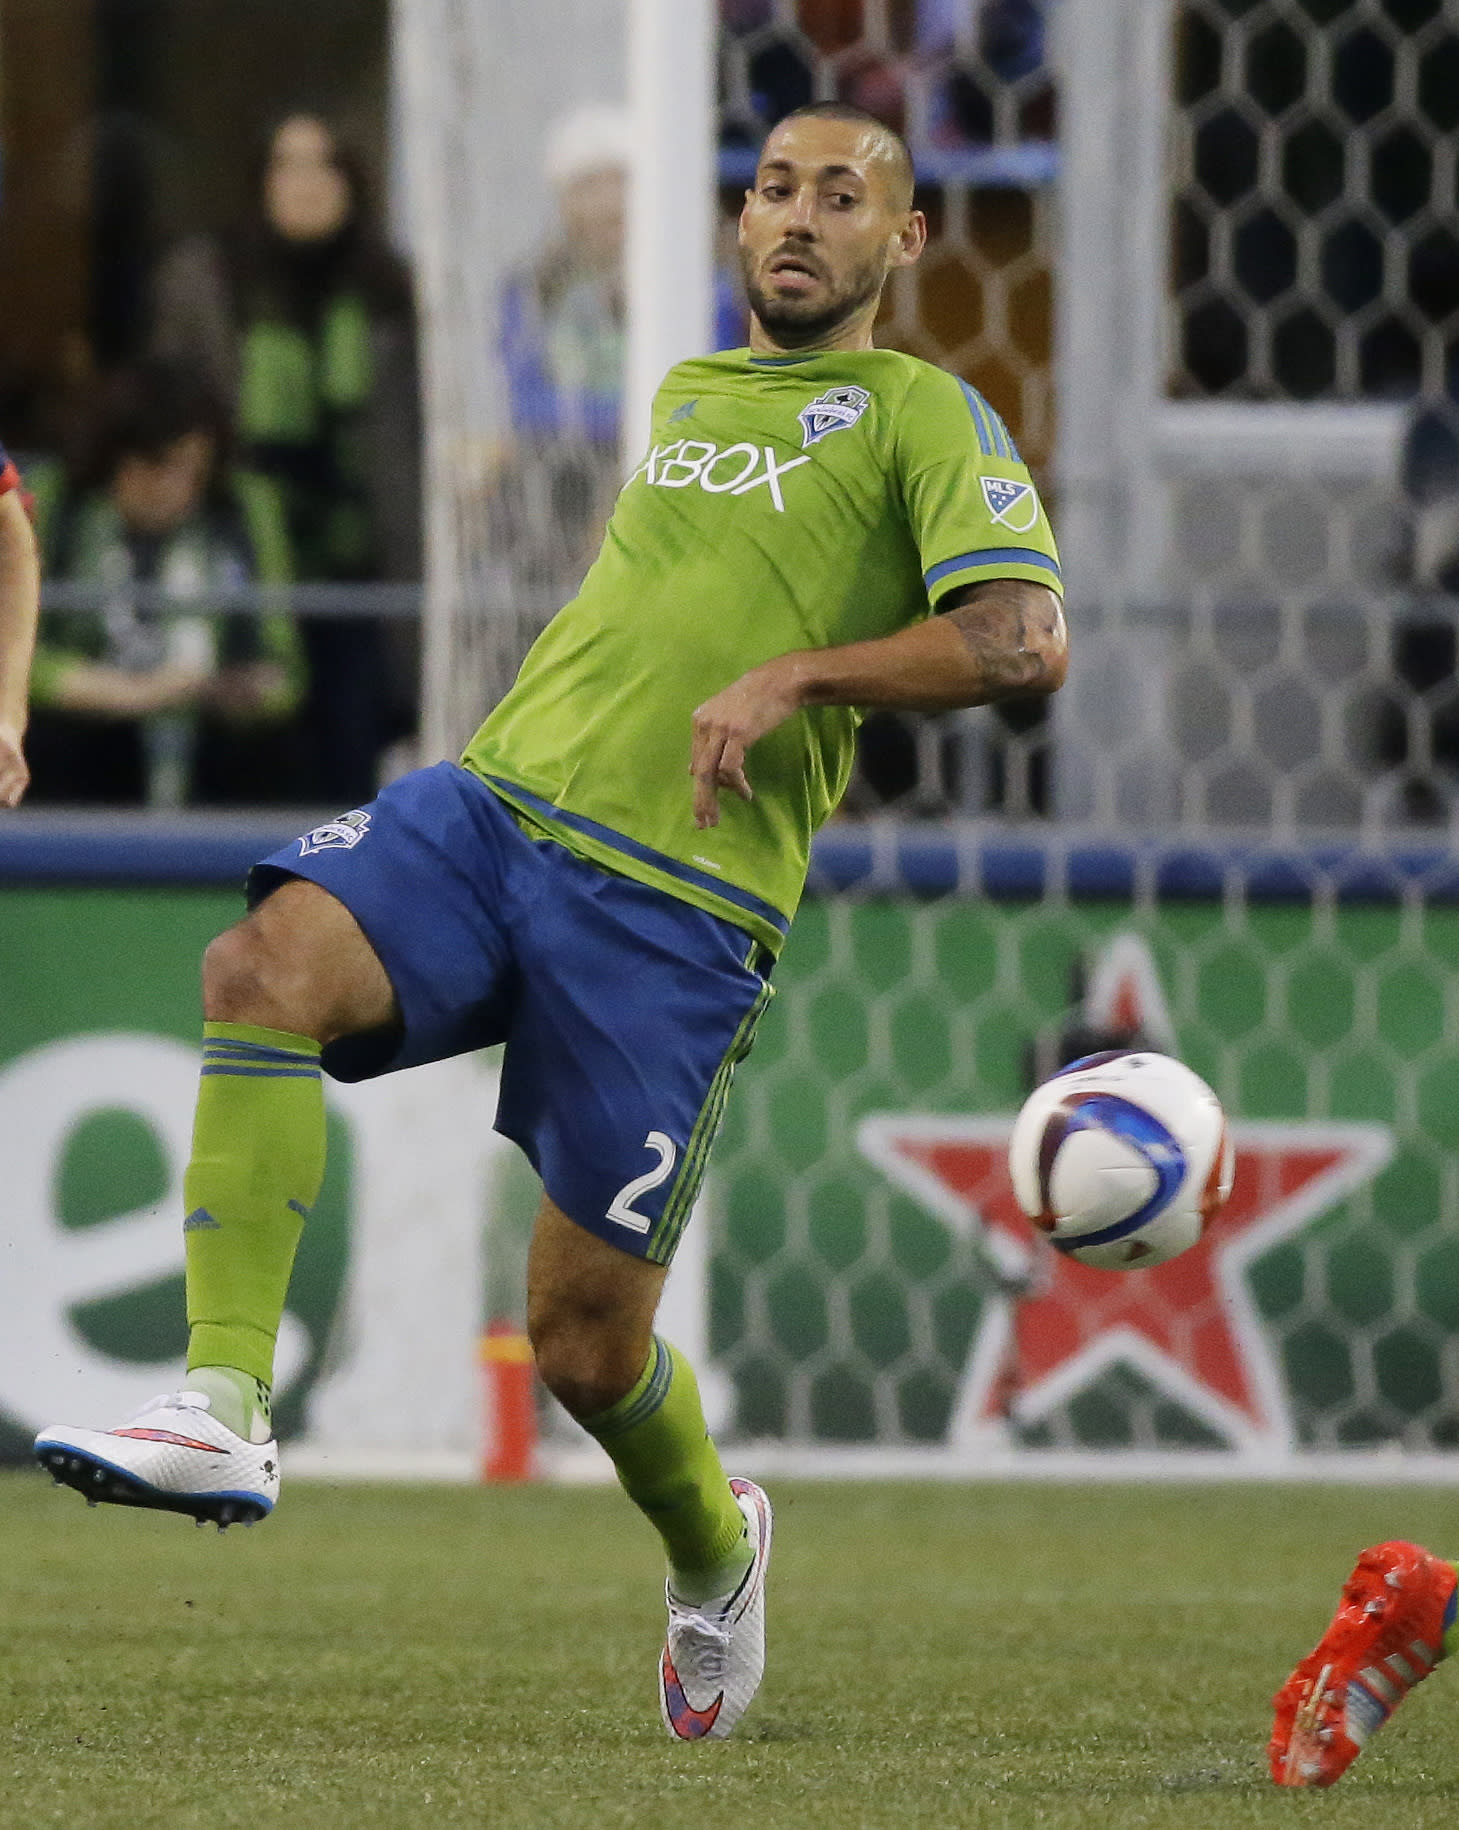 Clint Dempsey injures hamstring, out 2-3 weeks